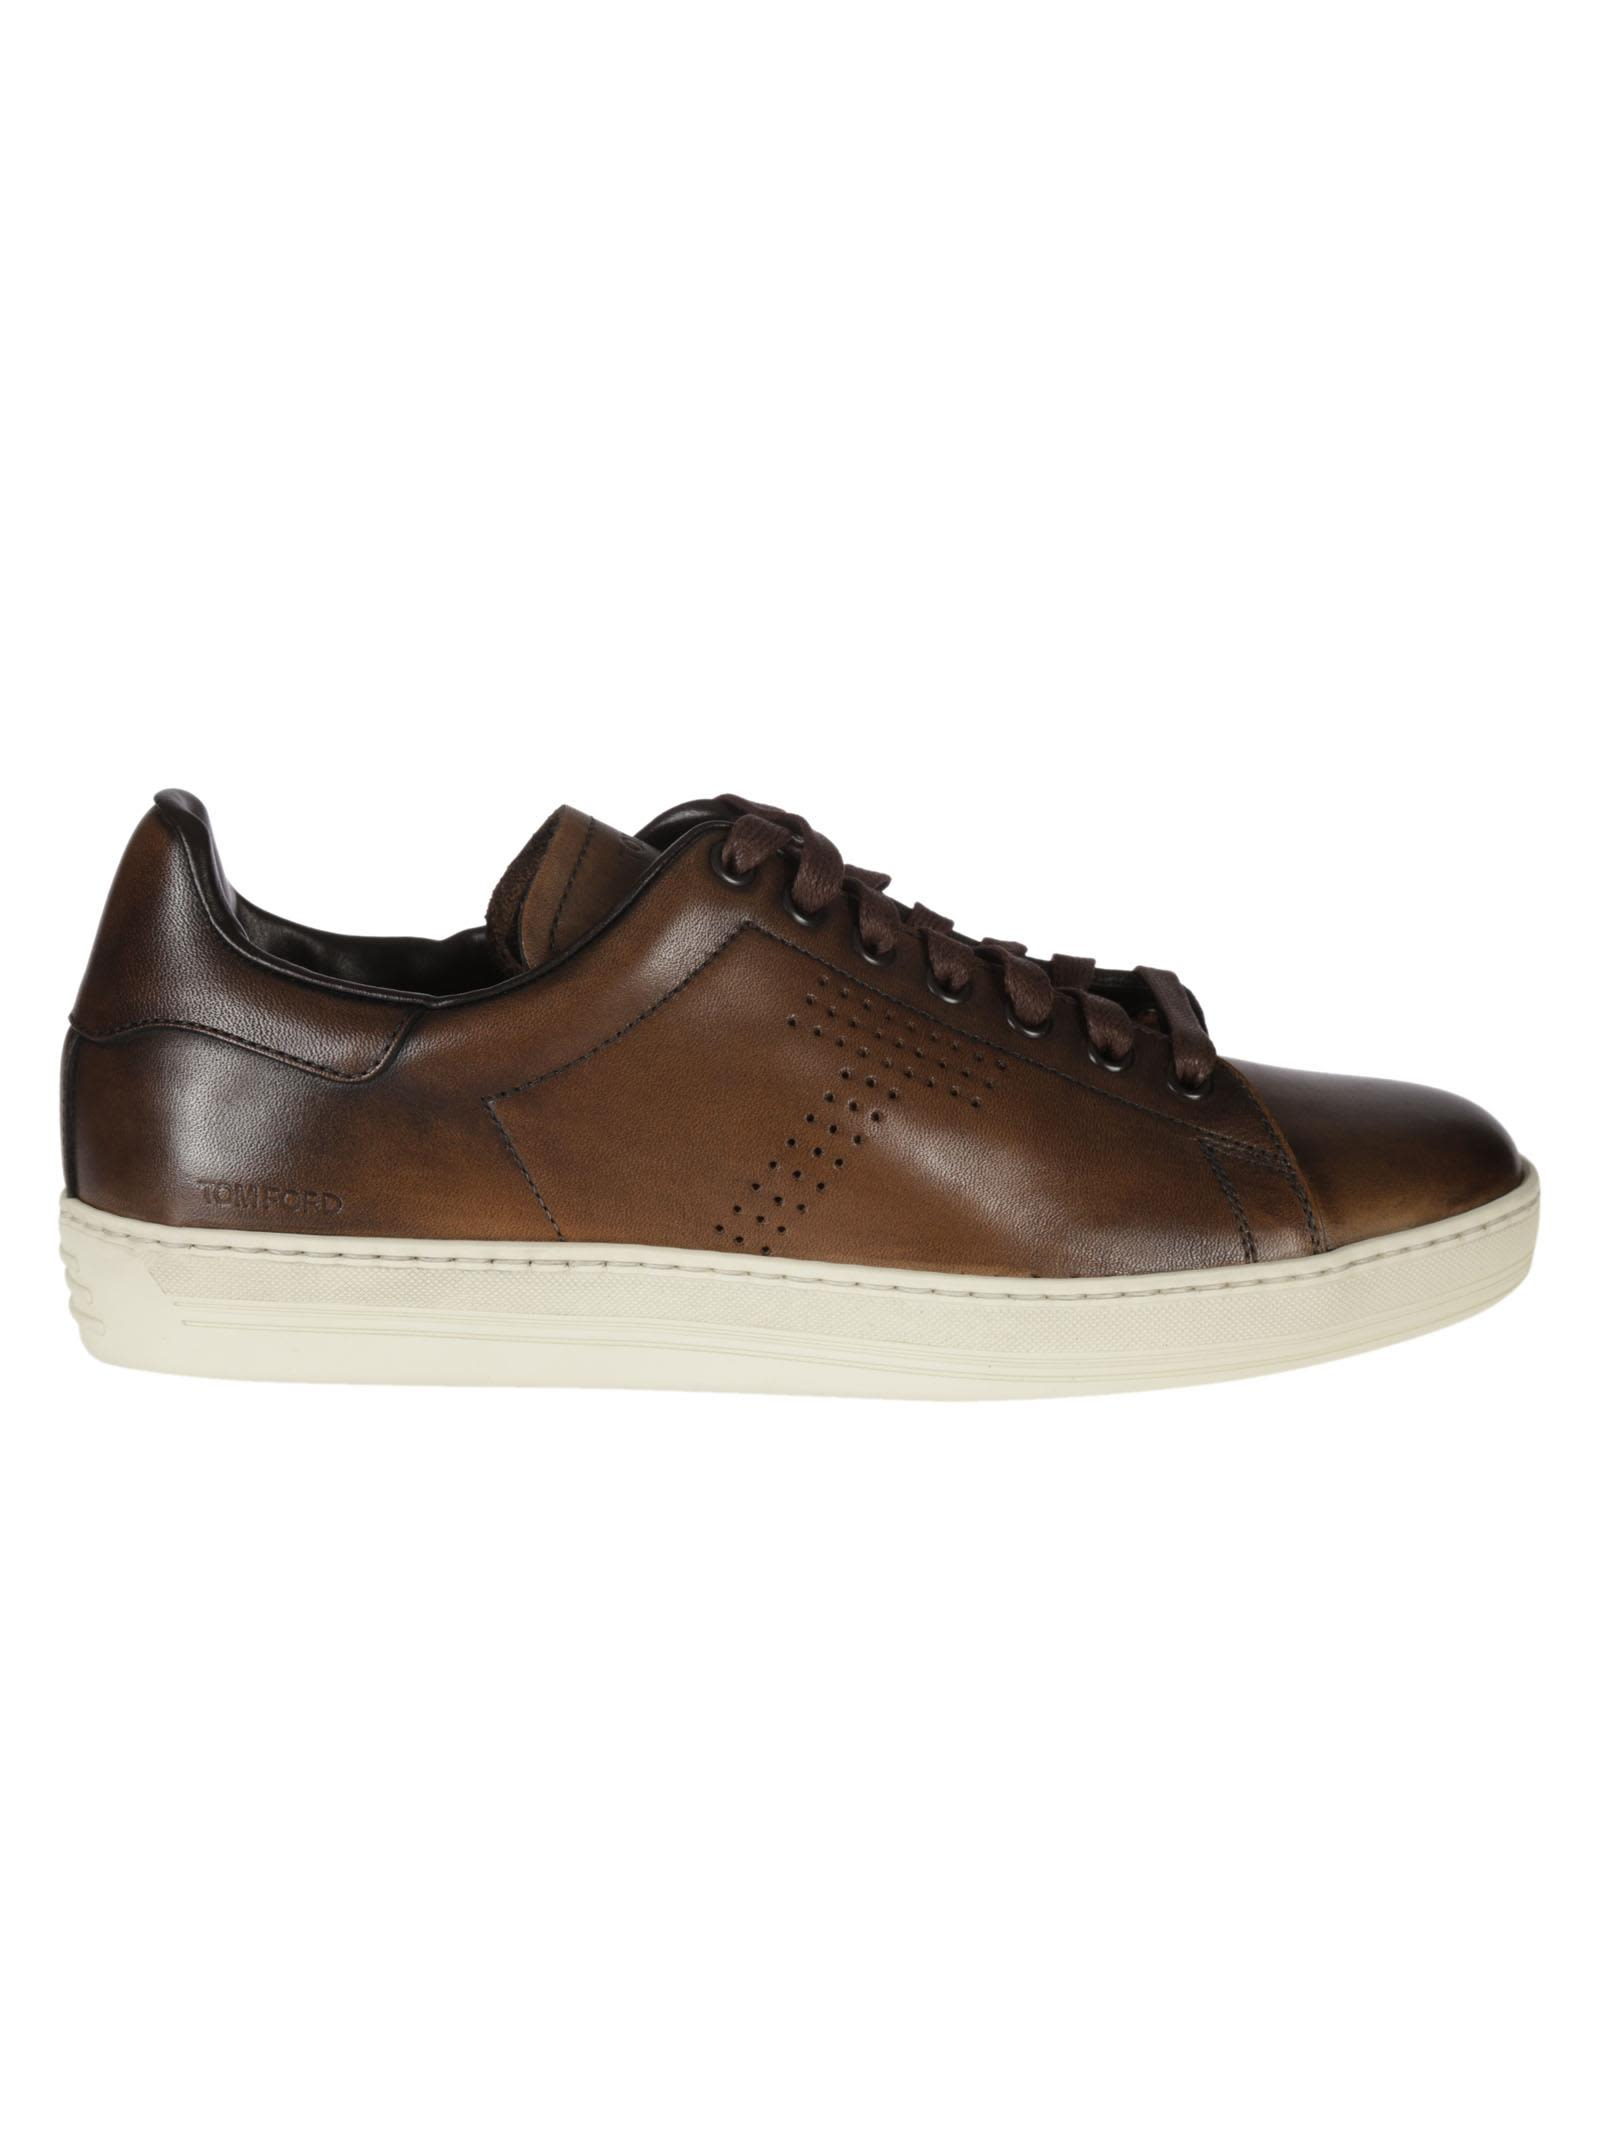 Tom Ford Classic Sneakers